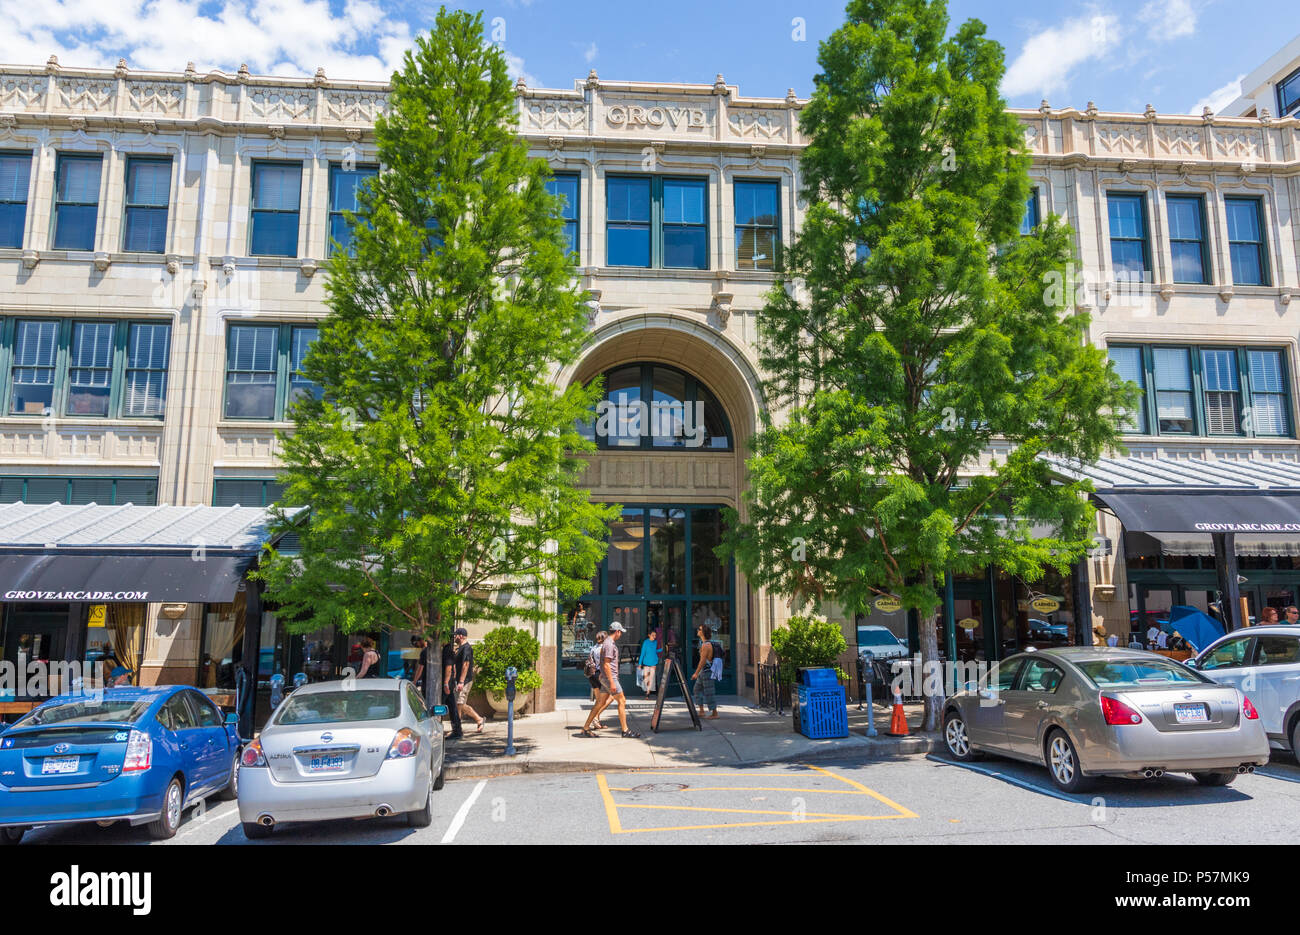 ASHEVILLE, NC, USA-24 JUNE 18: The Grove Arcade, comprising an entire city block in downtown Asheville. Stock Photo